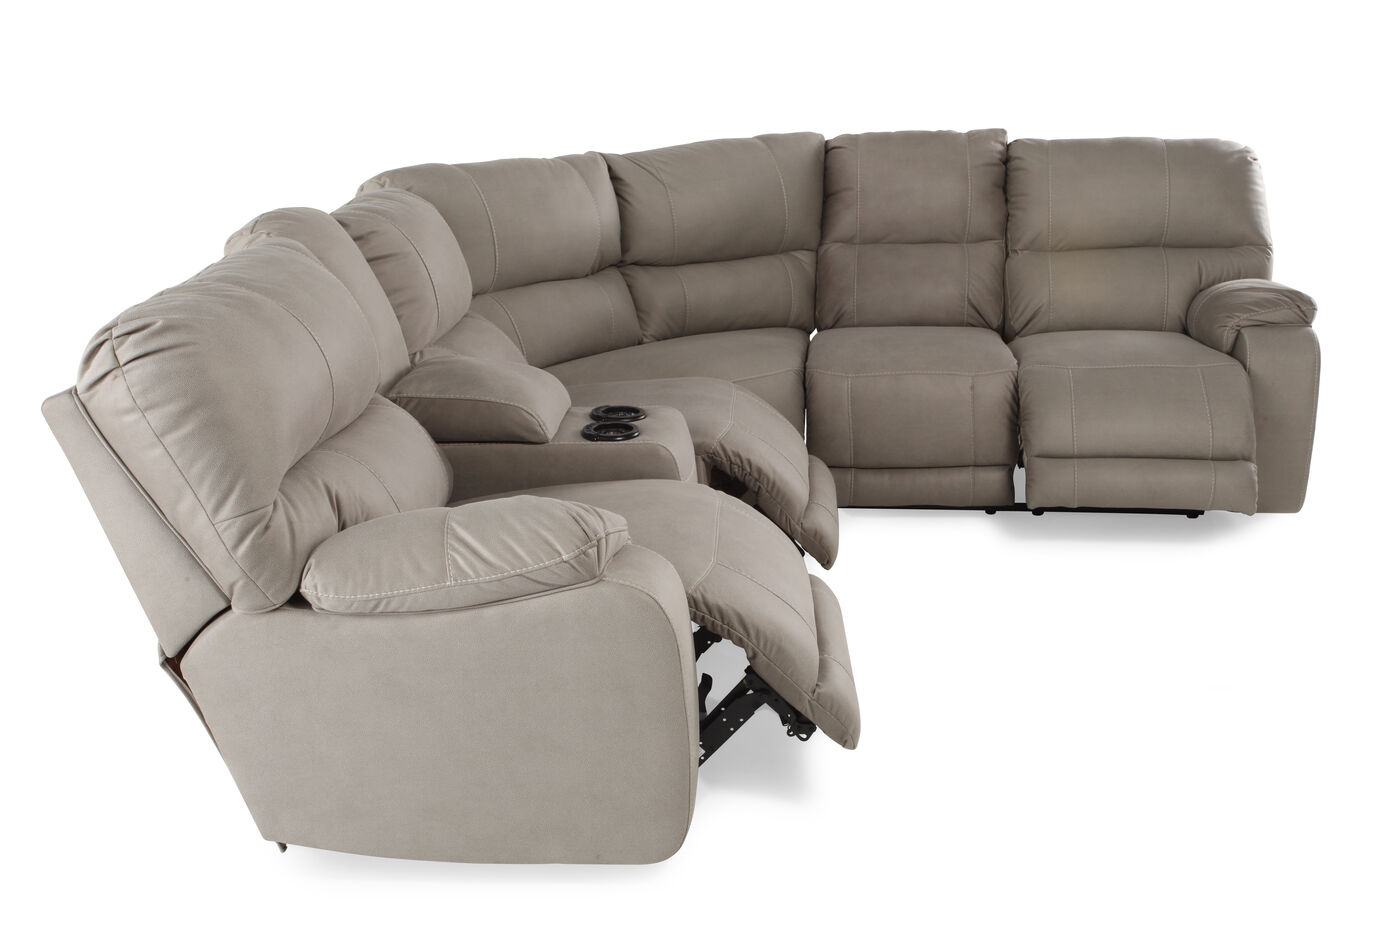 Three piece microfiber 103quot sectional in putty gray for 3 piece microfiber recliner sectional sofa